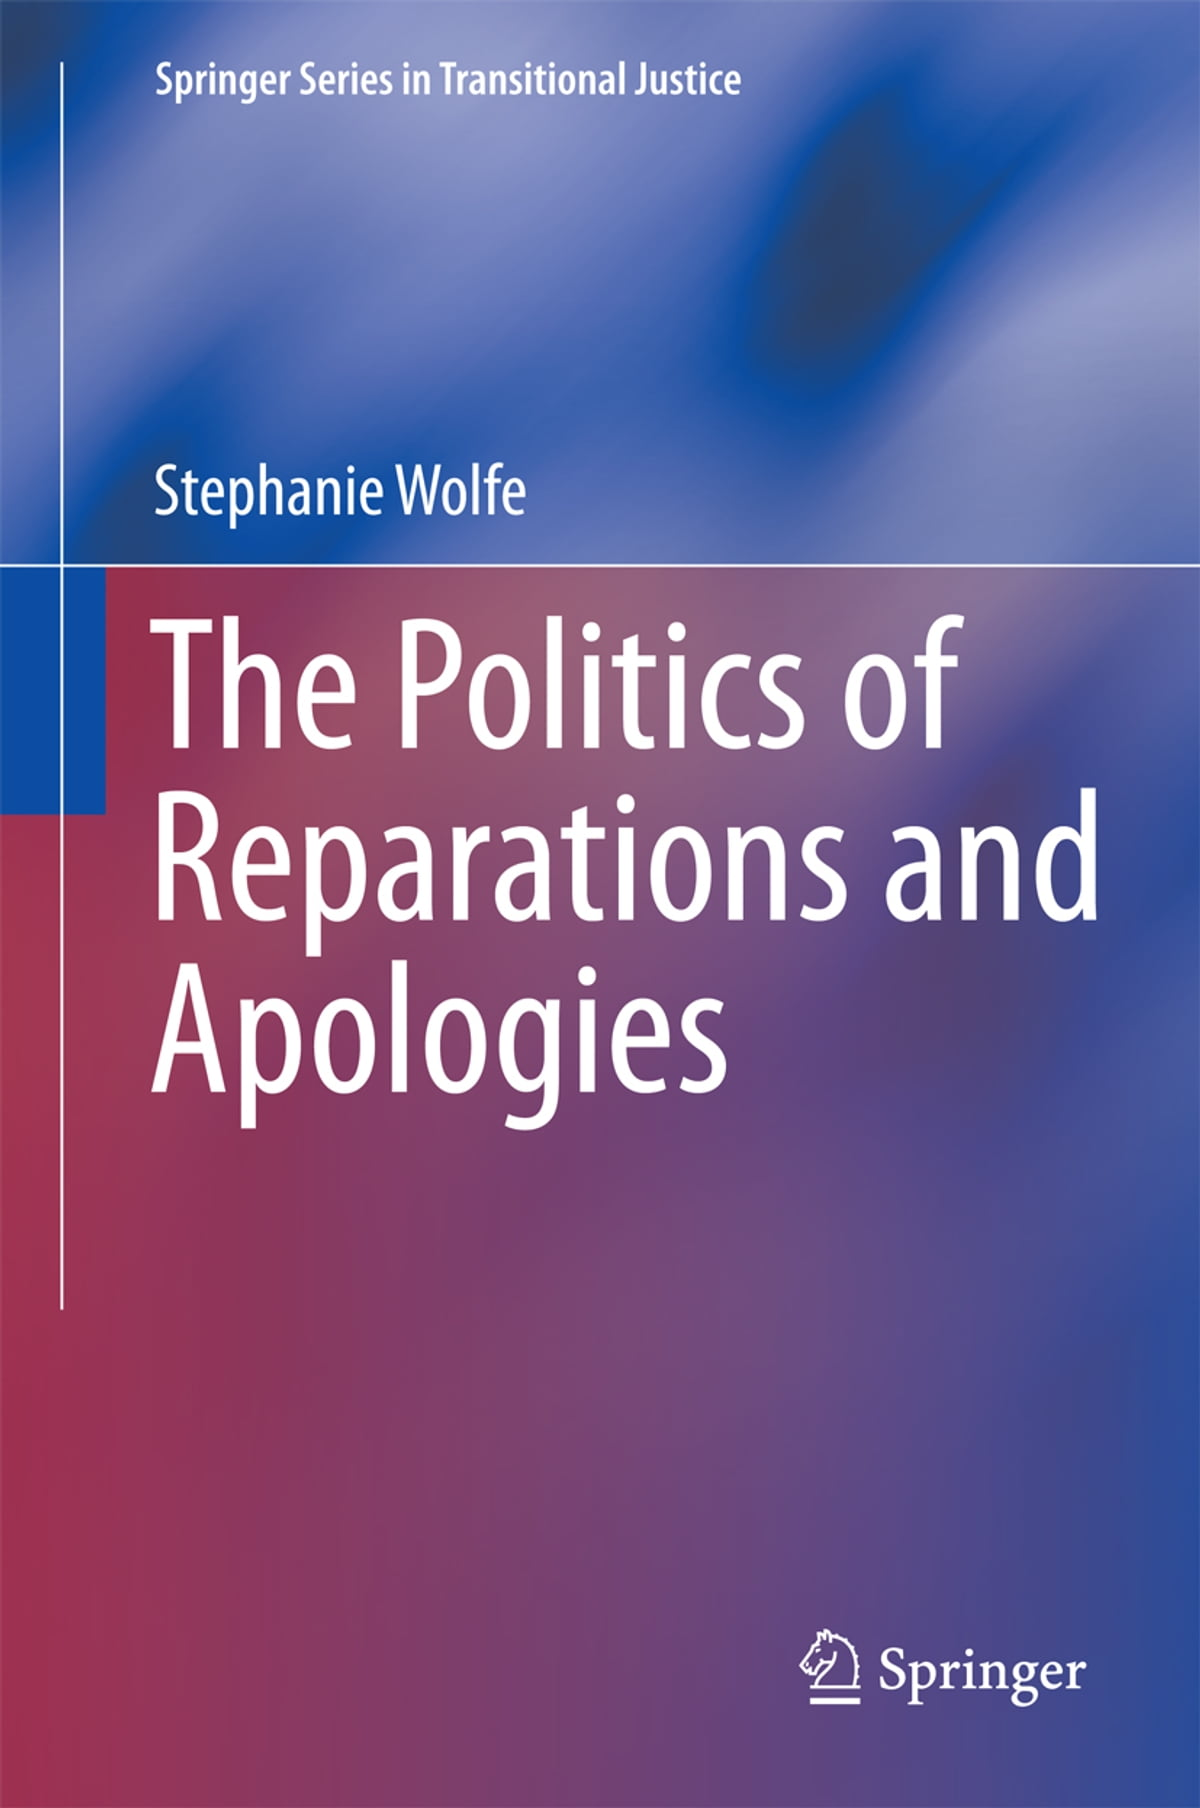 The Politics Of Reparations And Apologies Ebook By Stephanie Wolfe   9781461491859  Kobo